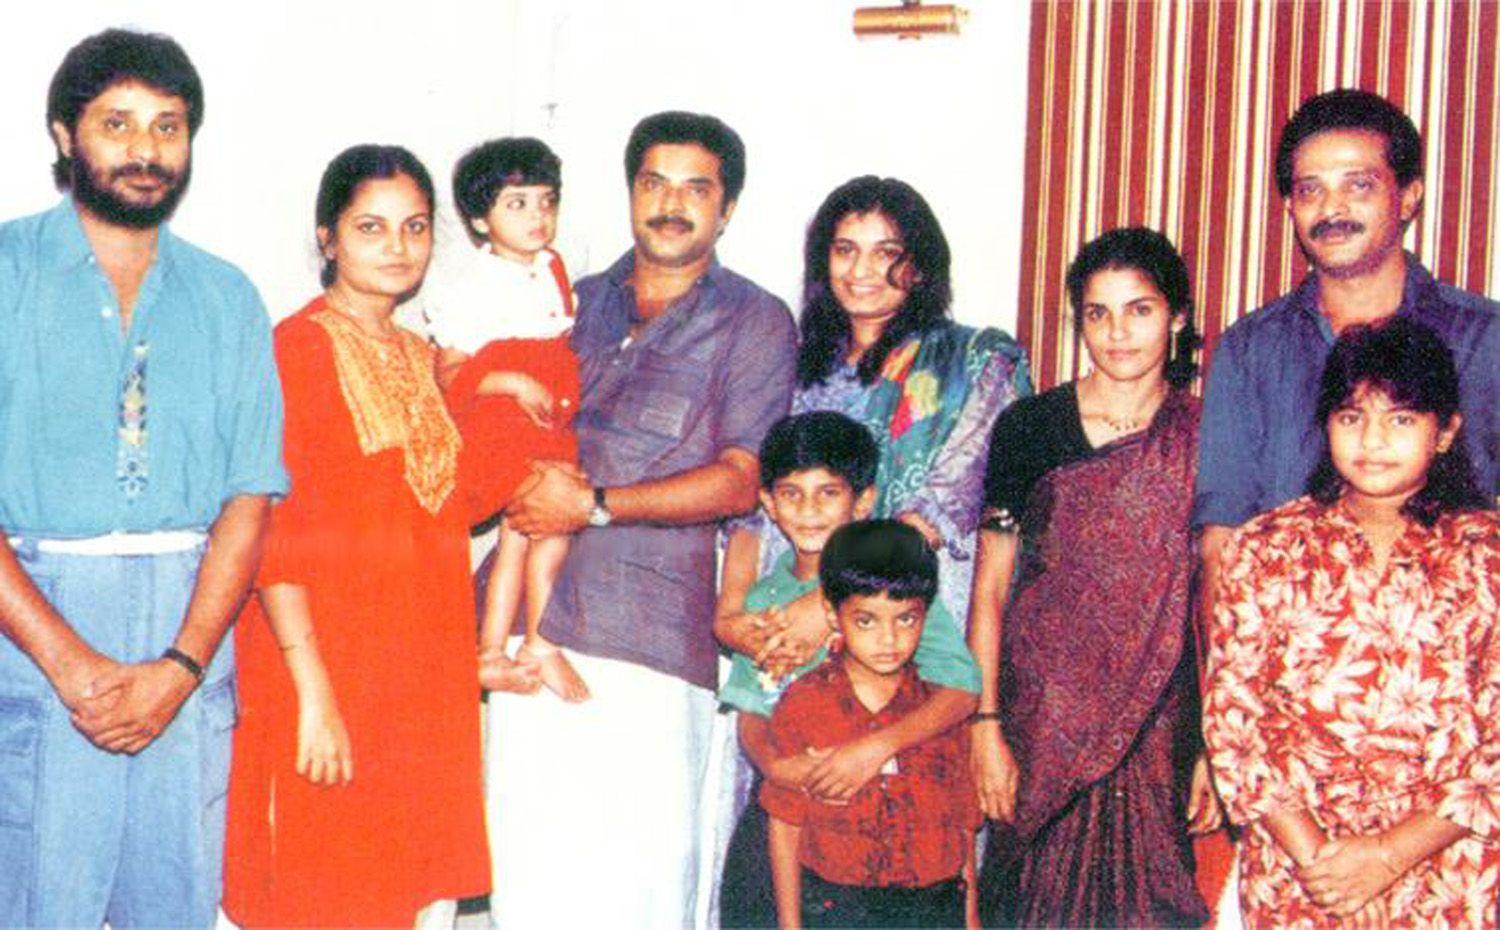 http://onlookersmedia.in/wp-content/uploads/2016/05/Mammootty-family-photos-Wife-Daughter-Son-10.jpg